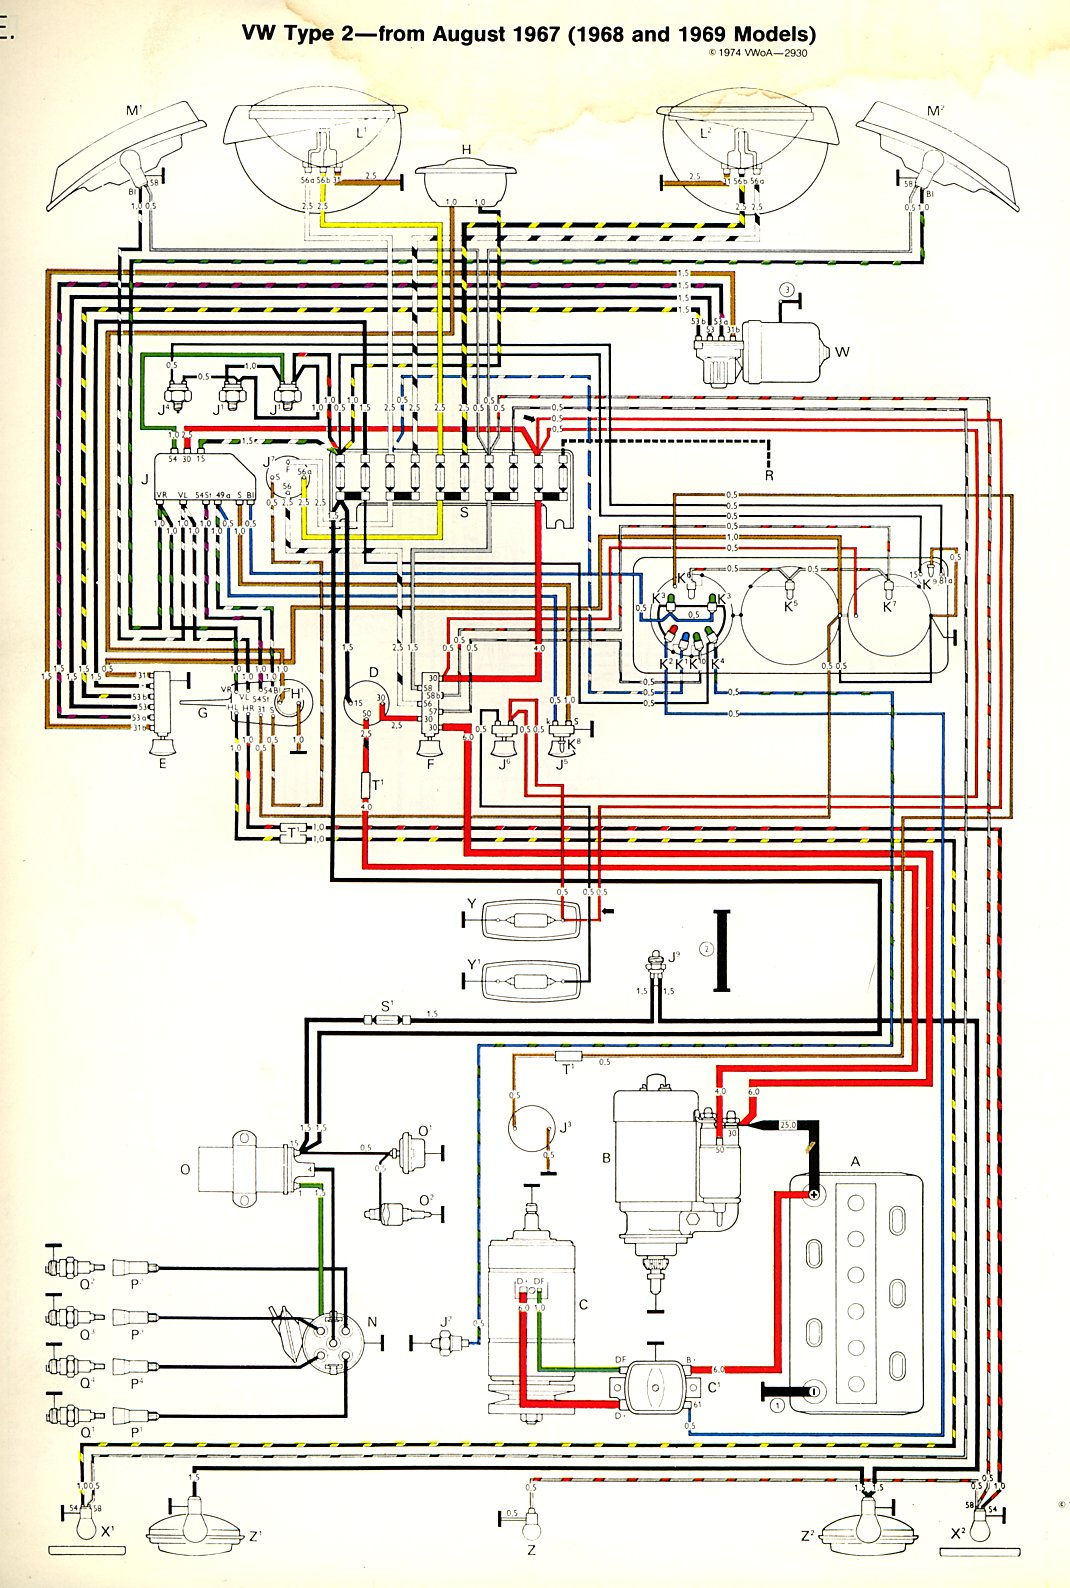 baybus_6869a vw bus wiring diagram 1965 vw bus wiring diagram \u2022 wiring diagrams wiring diagram for 1973 vw thing at alyssarenee.co